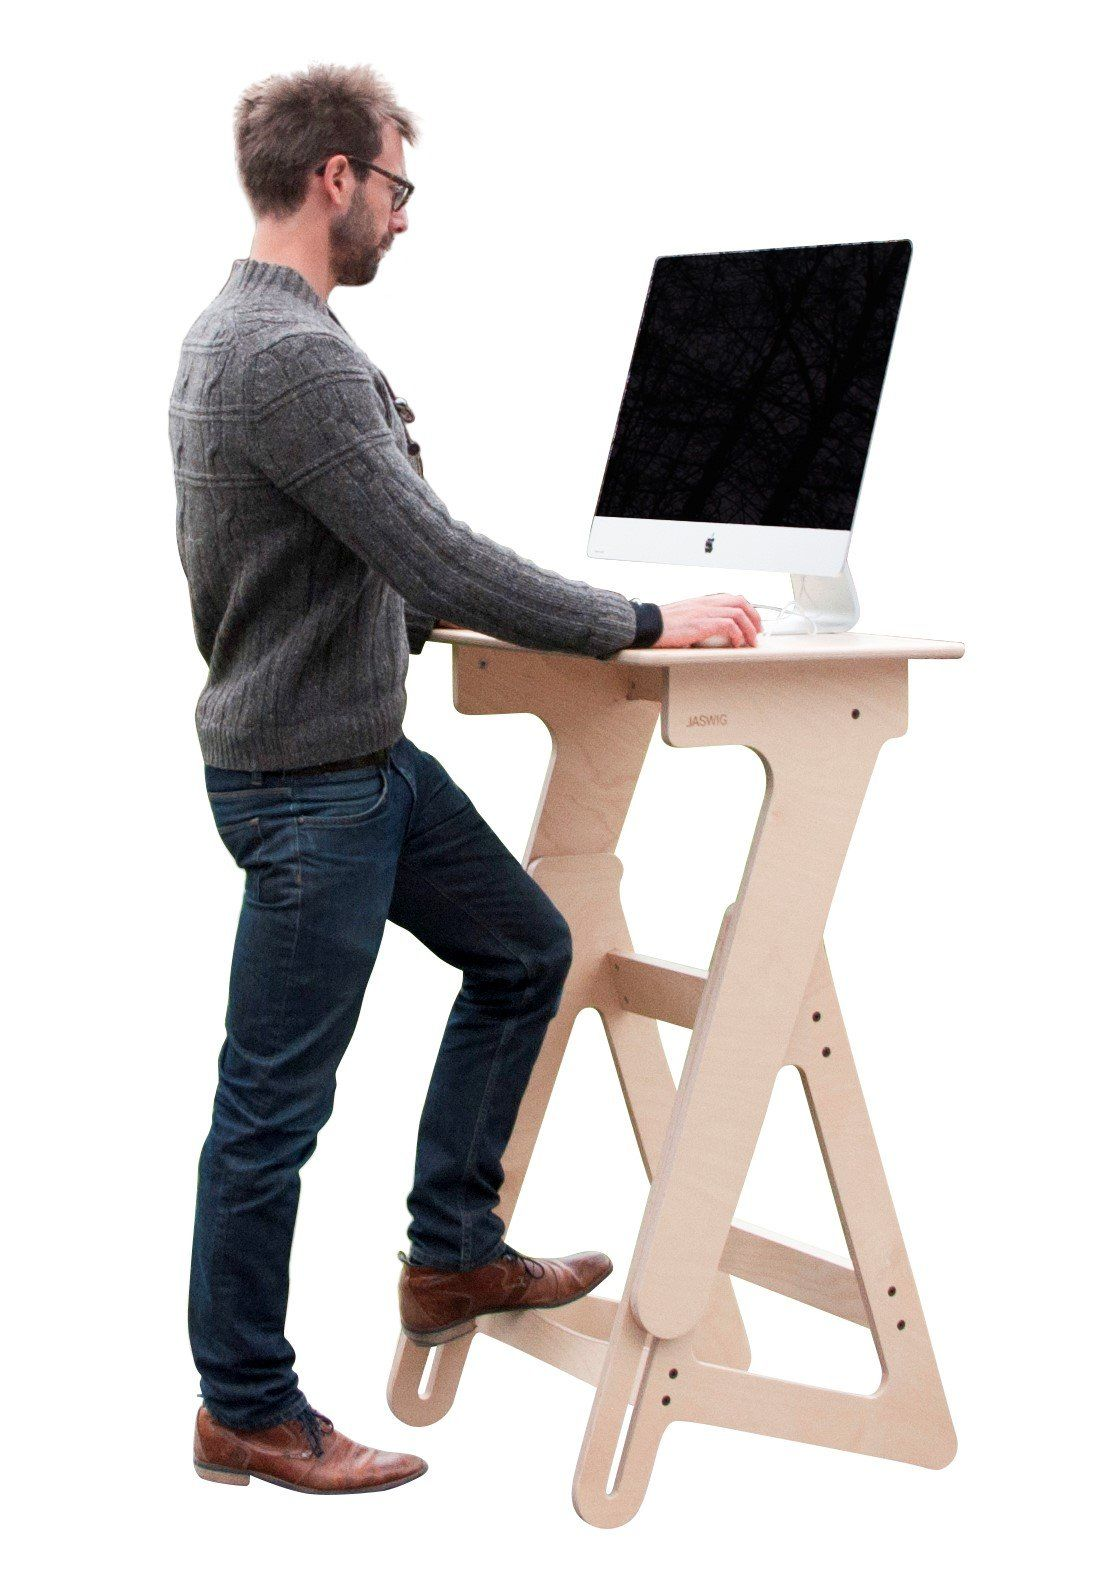 Superieur Adjustable Height Stand Up Desk, Wood Standing Desk For Office And Home,  Ergonomic Stand